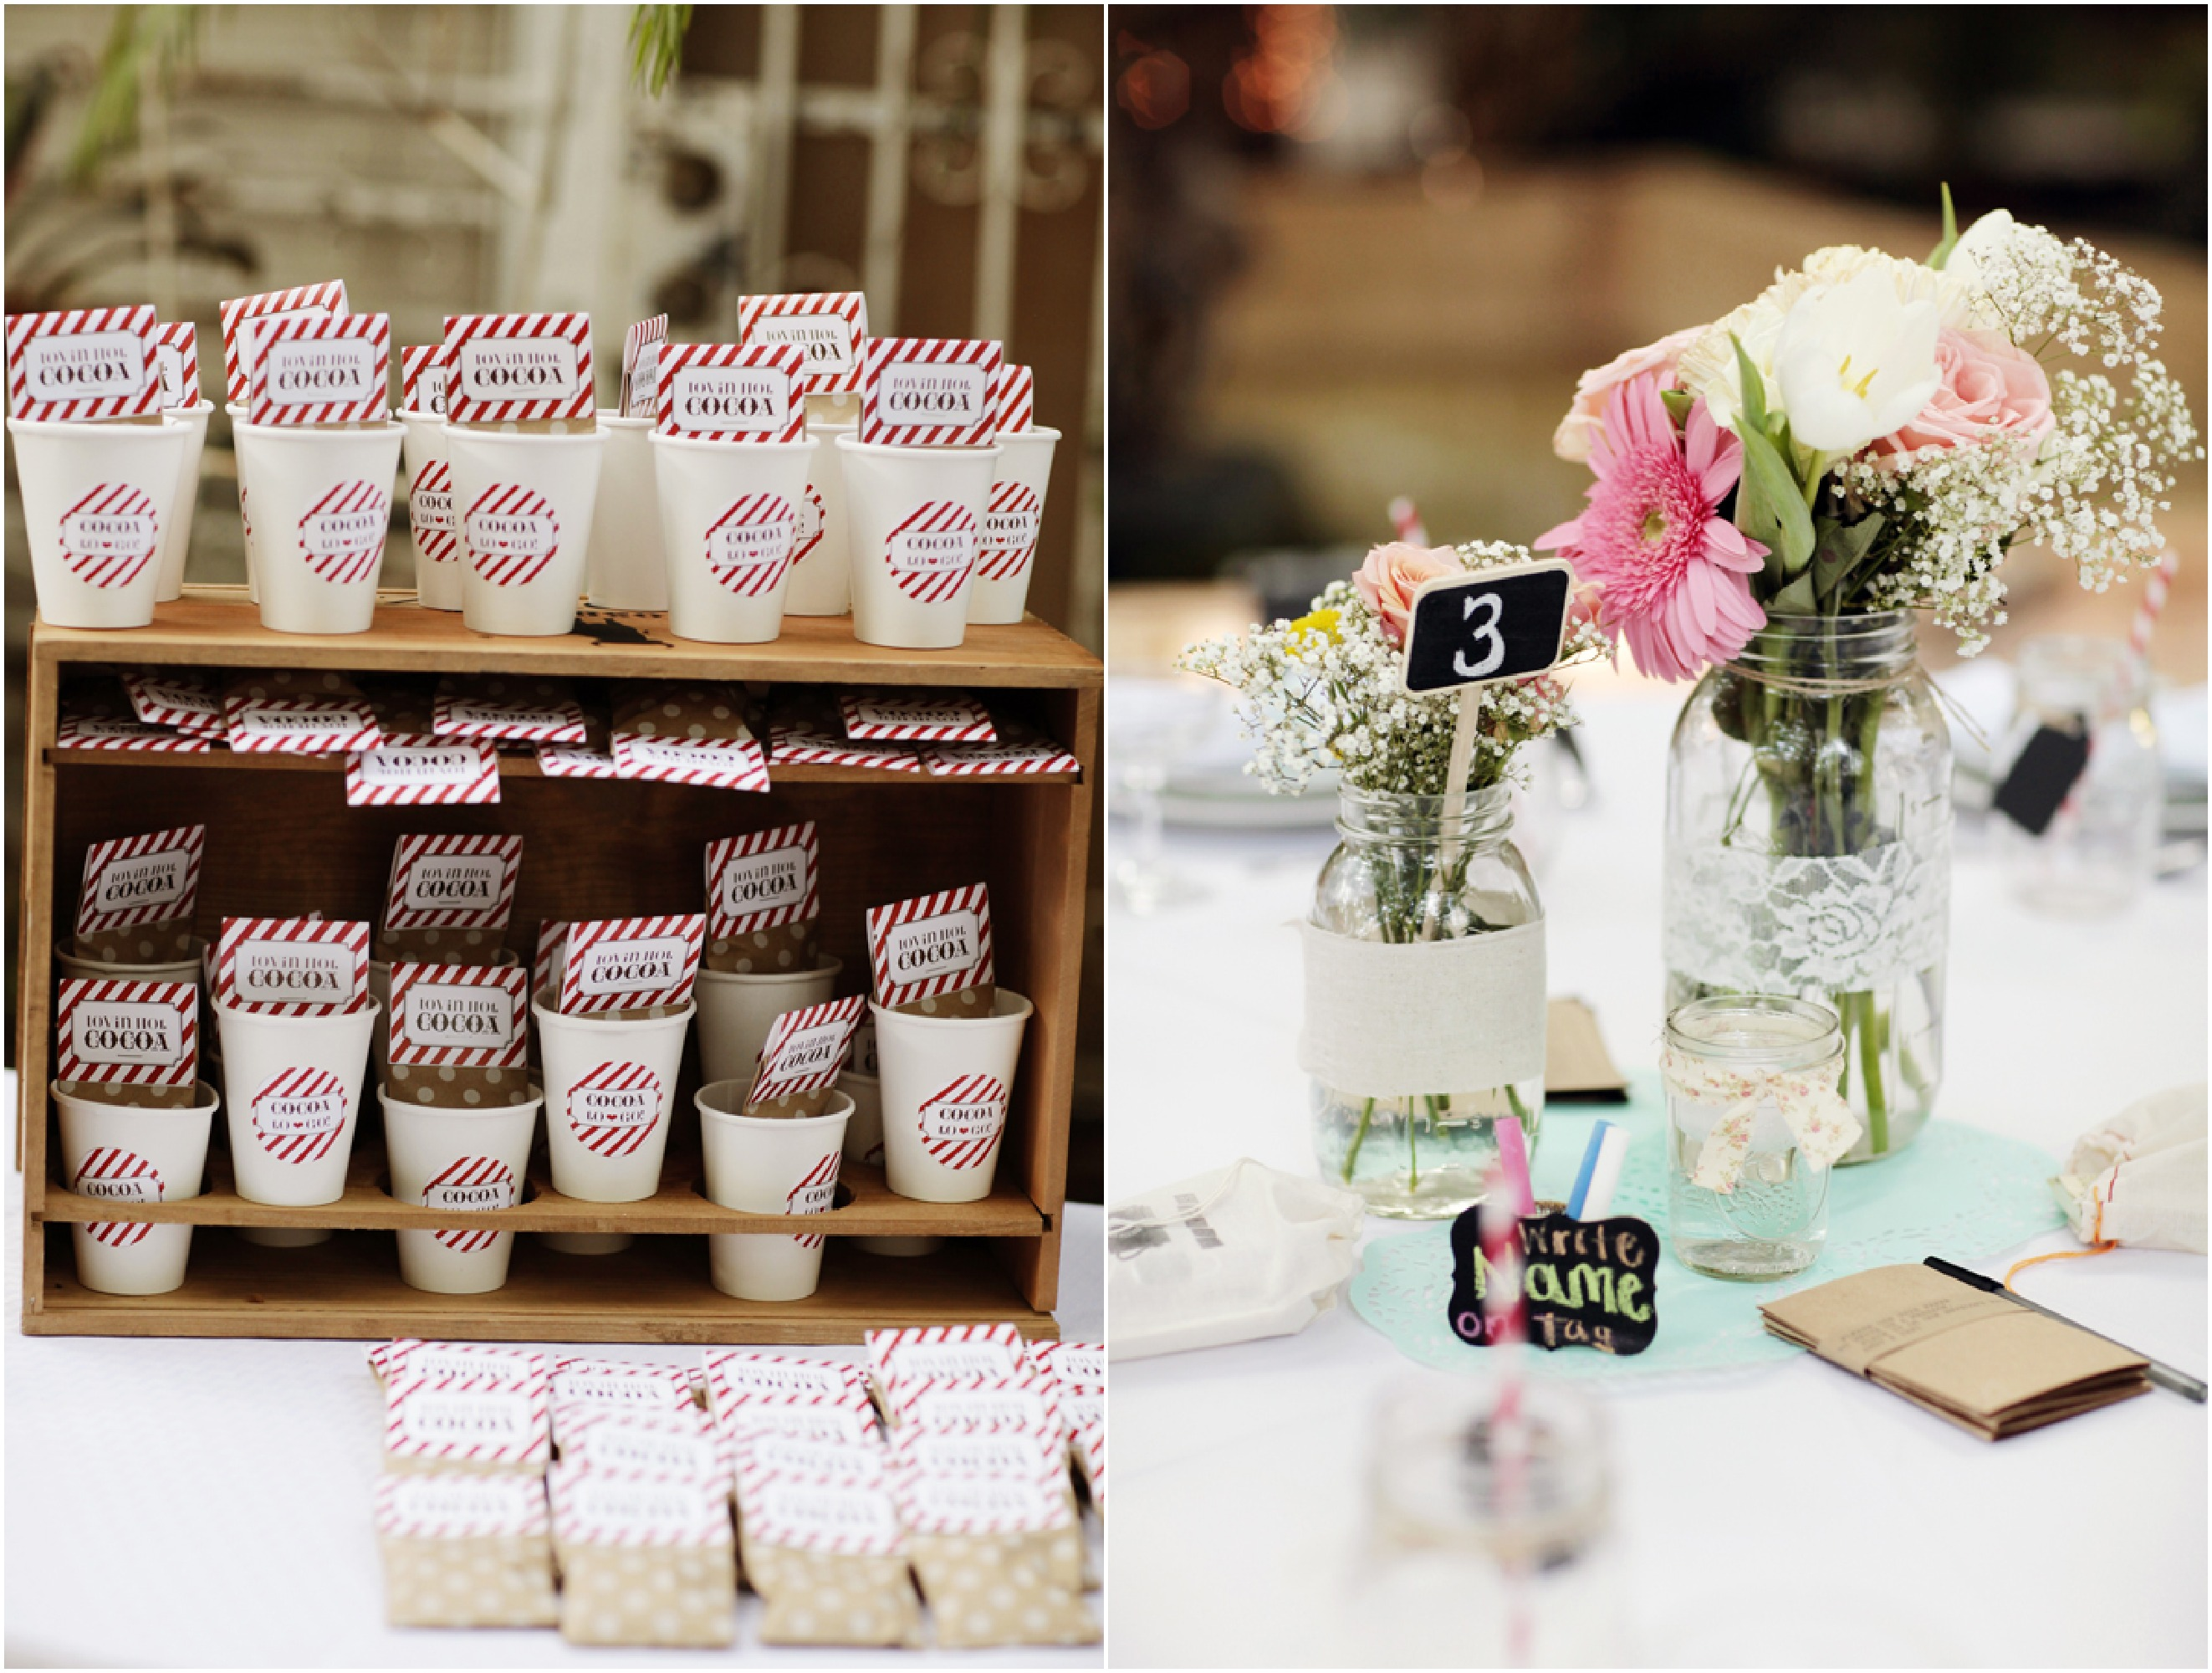 Vintage Inspired Southern Wedding - Rustic Wedding Chic